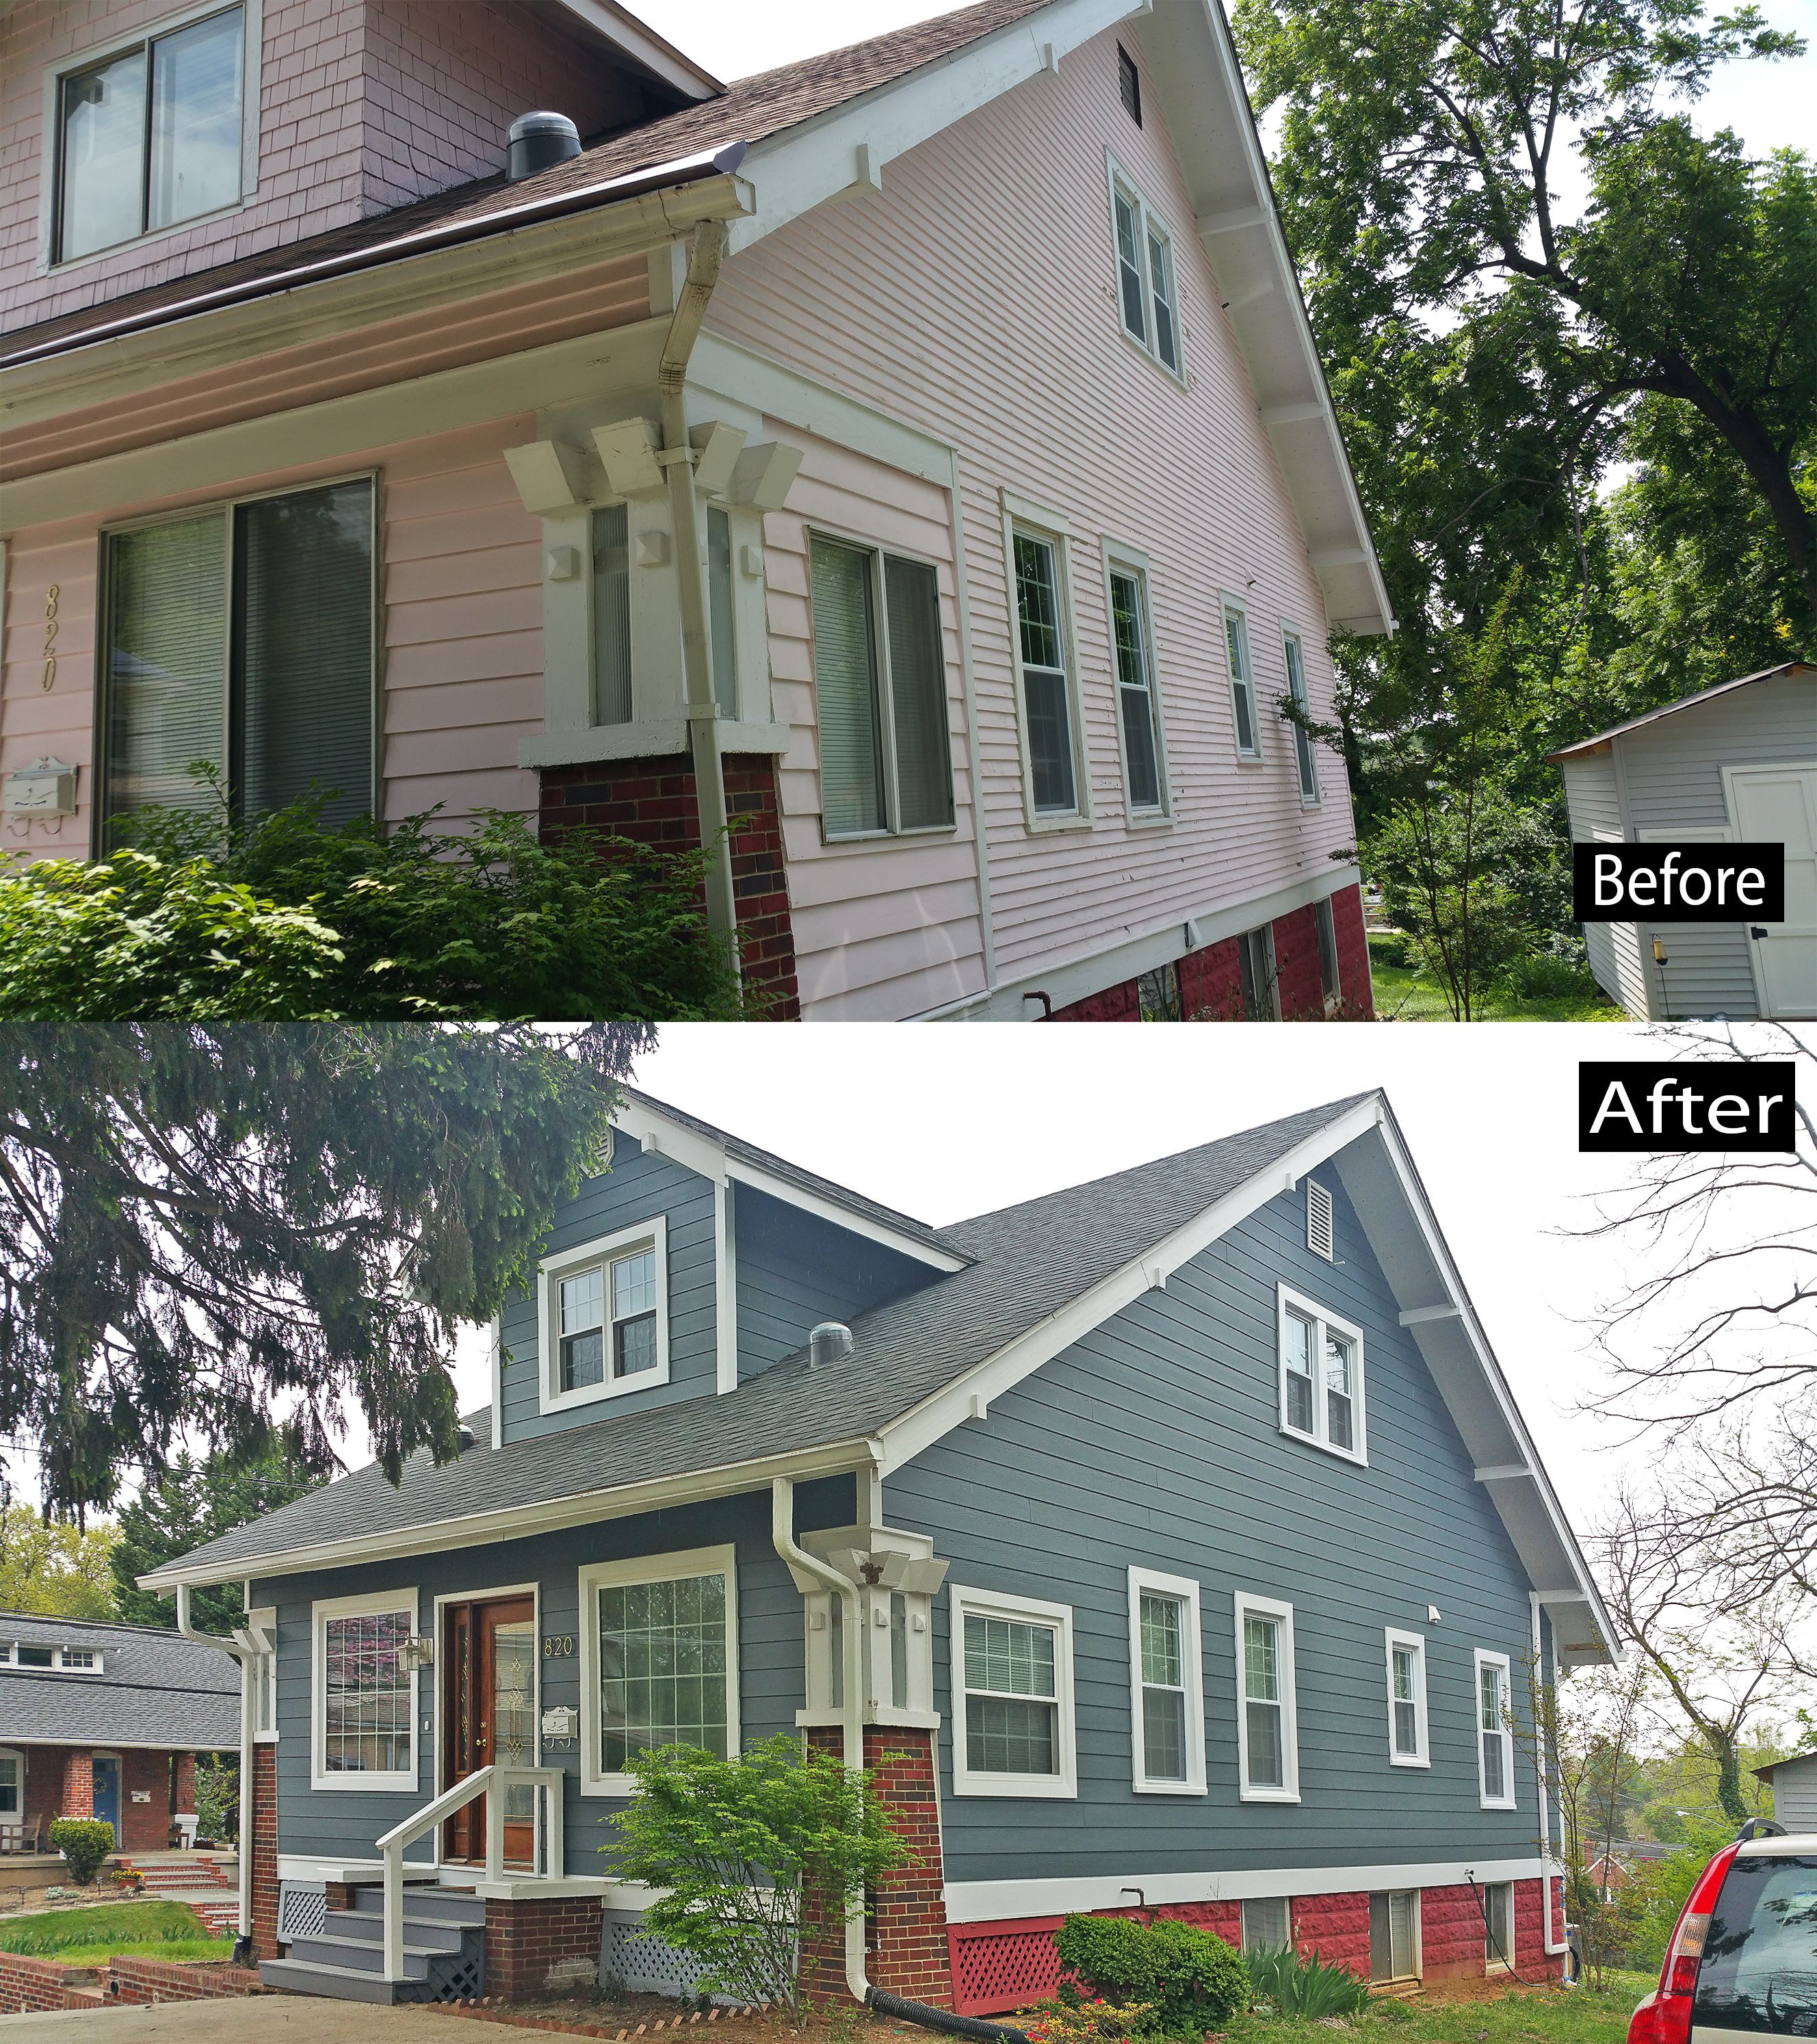 Install Owens Corning Duration Shingle Estate Gray Color James Hardie Cedarmill Fiber Cement Siding Evening Blue Color T Vinyl Siding House Exterior Siding